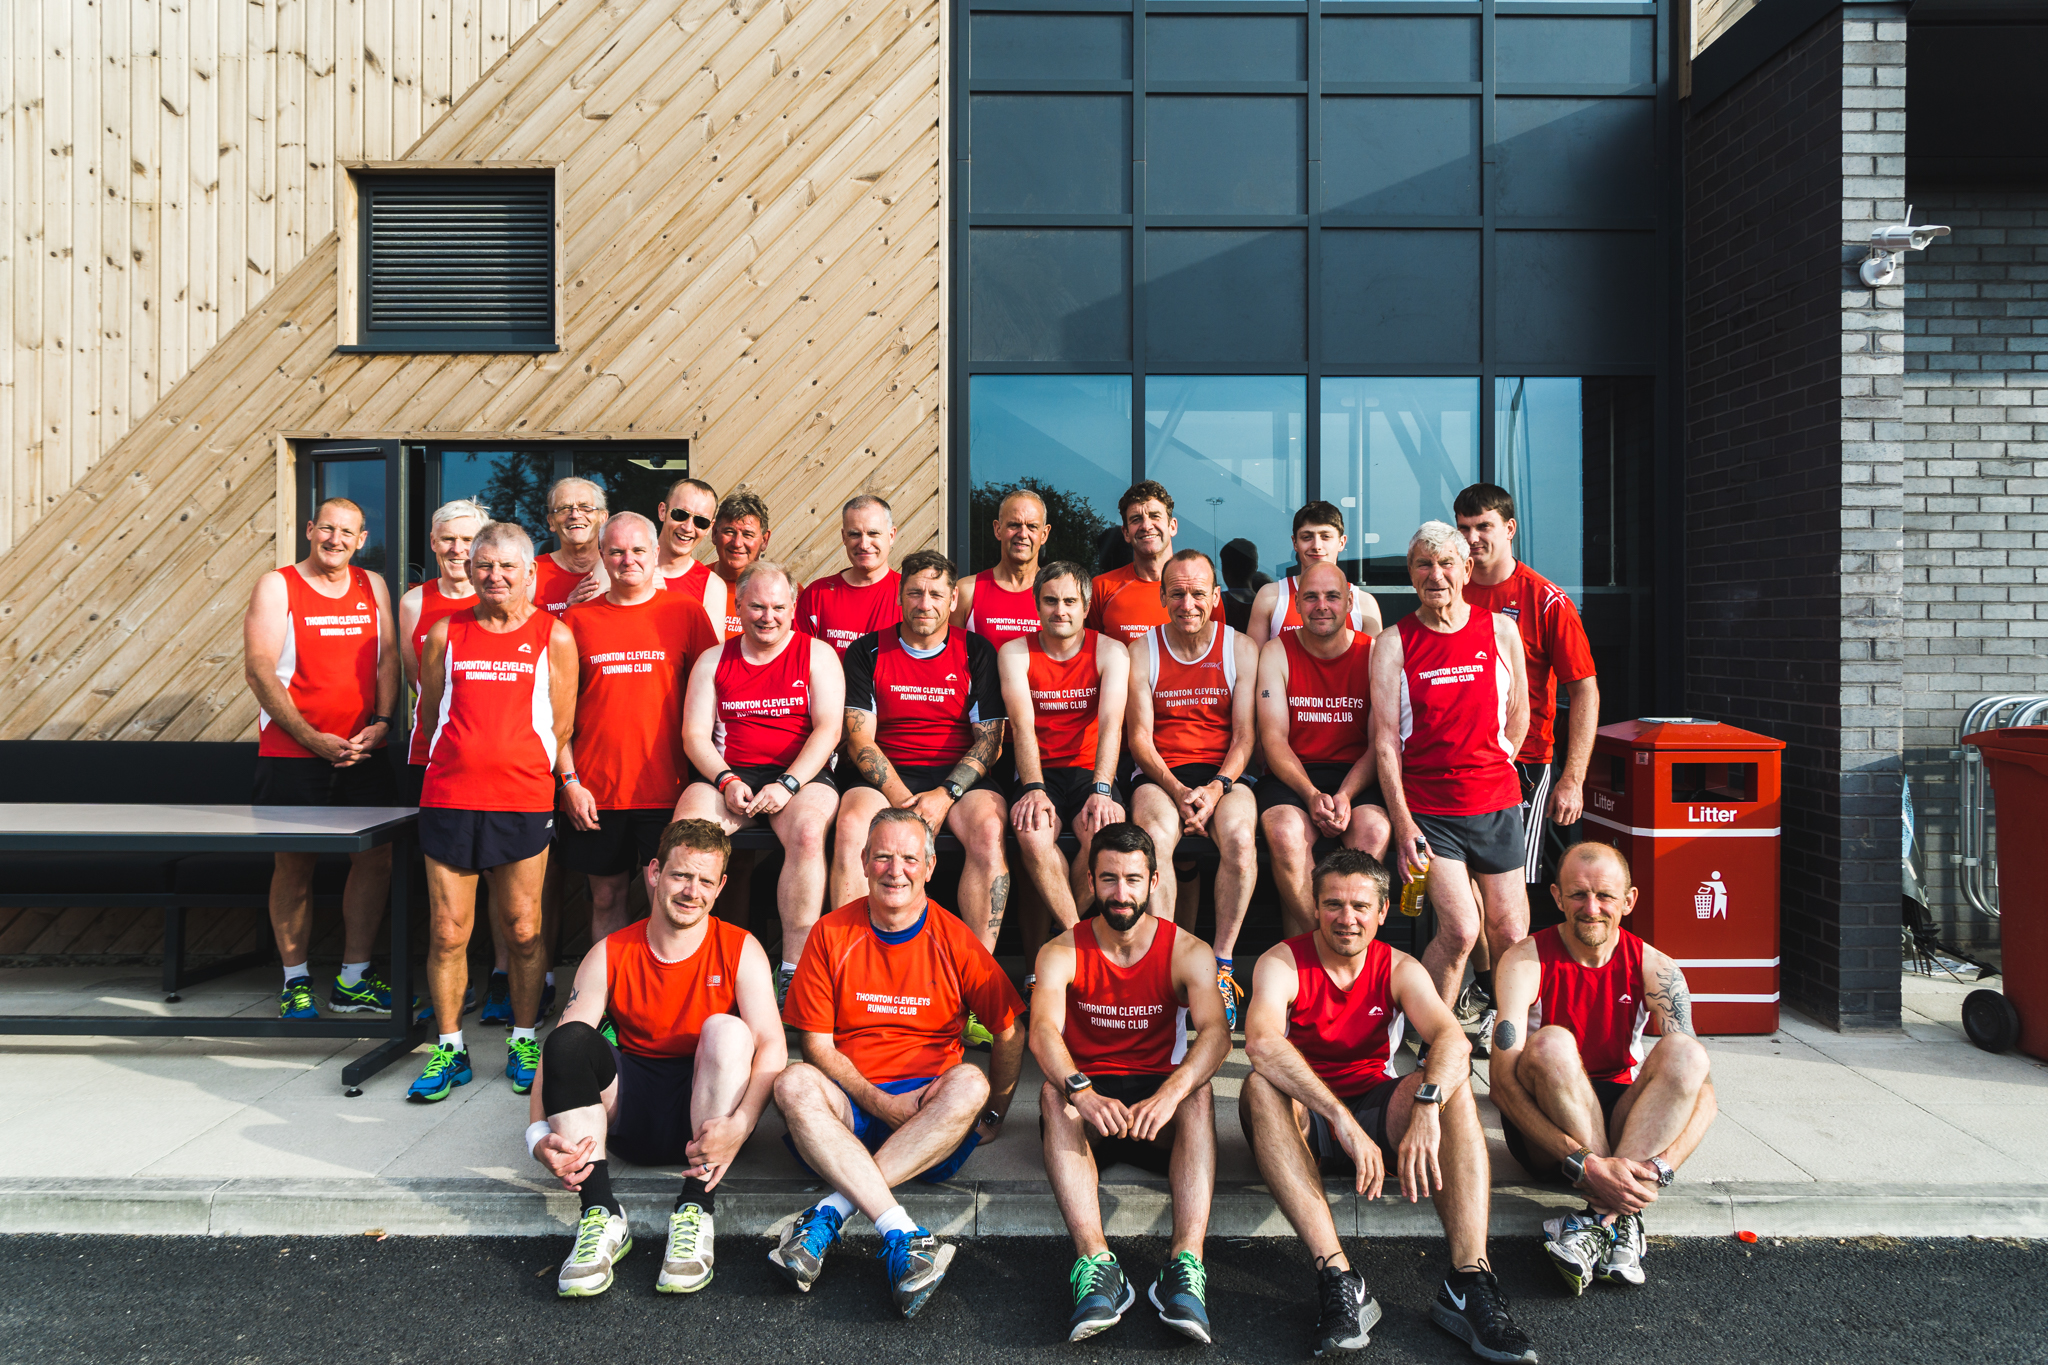 16-06-07 Team photo for Cleveleys and Thornton running club-16.jpg